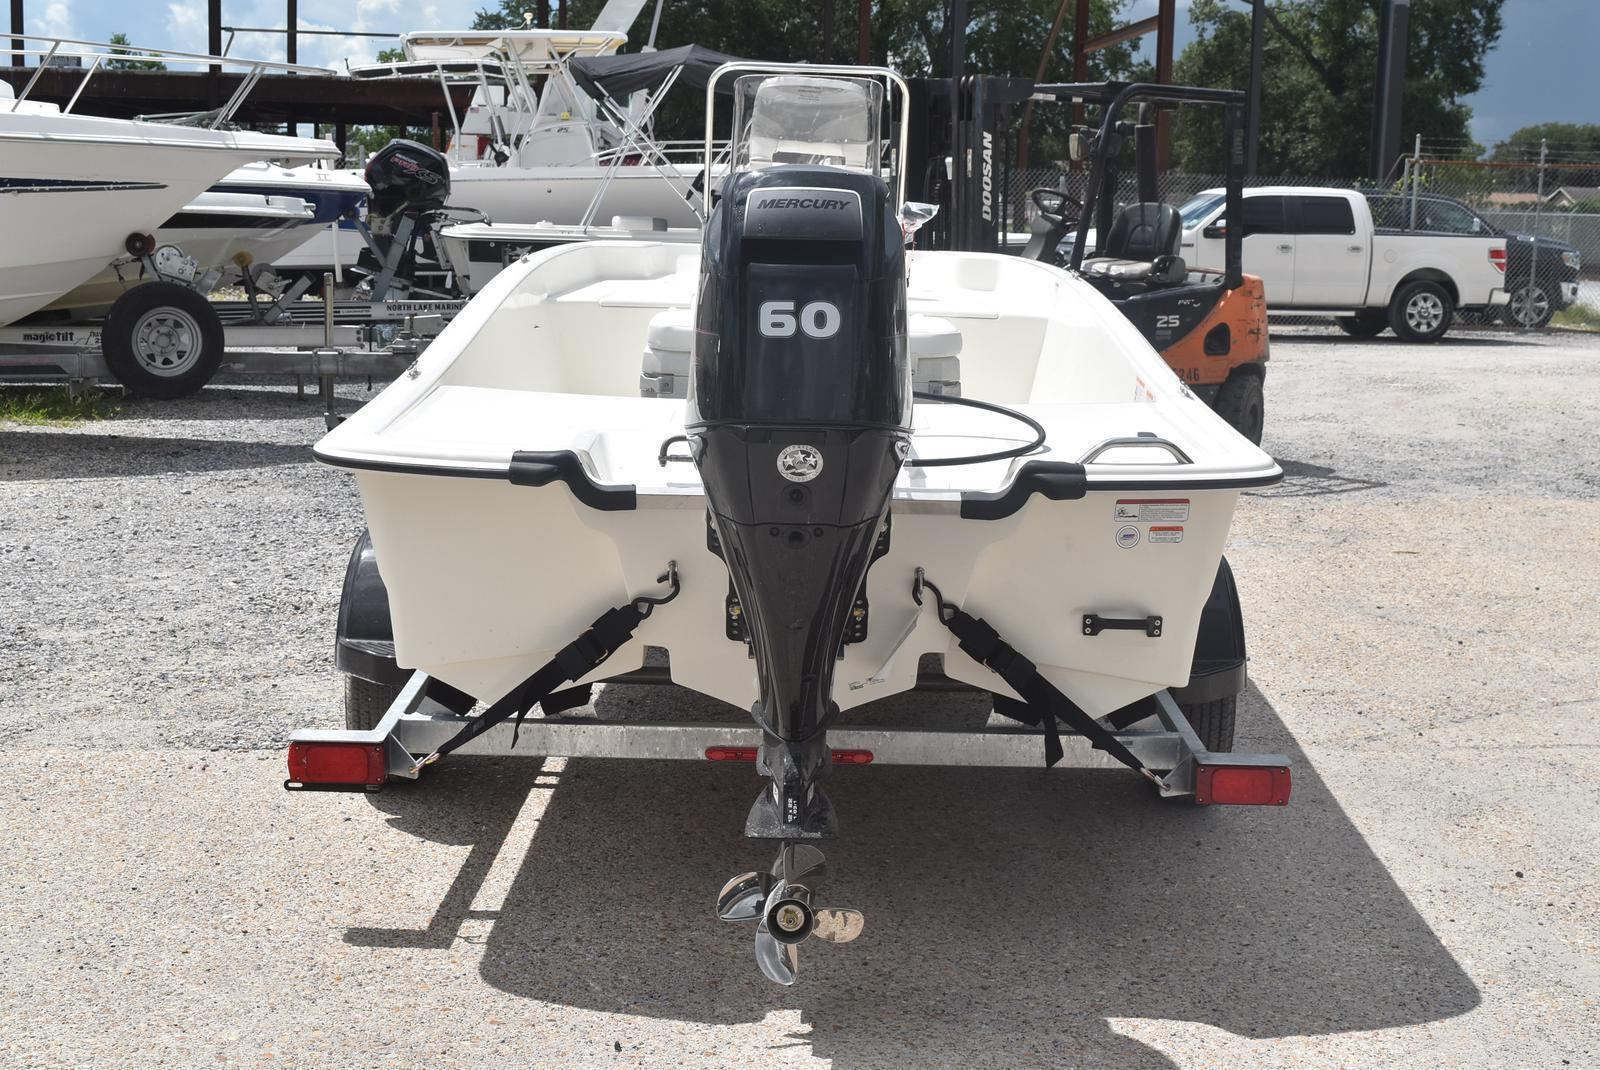 2020 Mako boat for sale, model of the boat is Pro Skiff 17, 75 ELPT & Image # 593 of 702